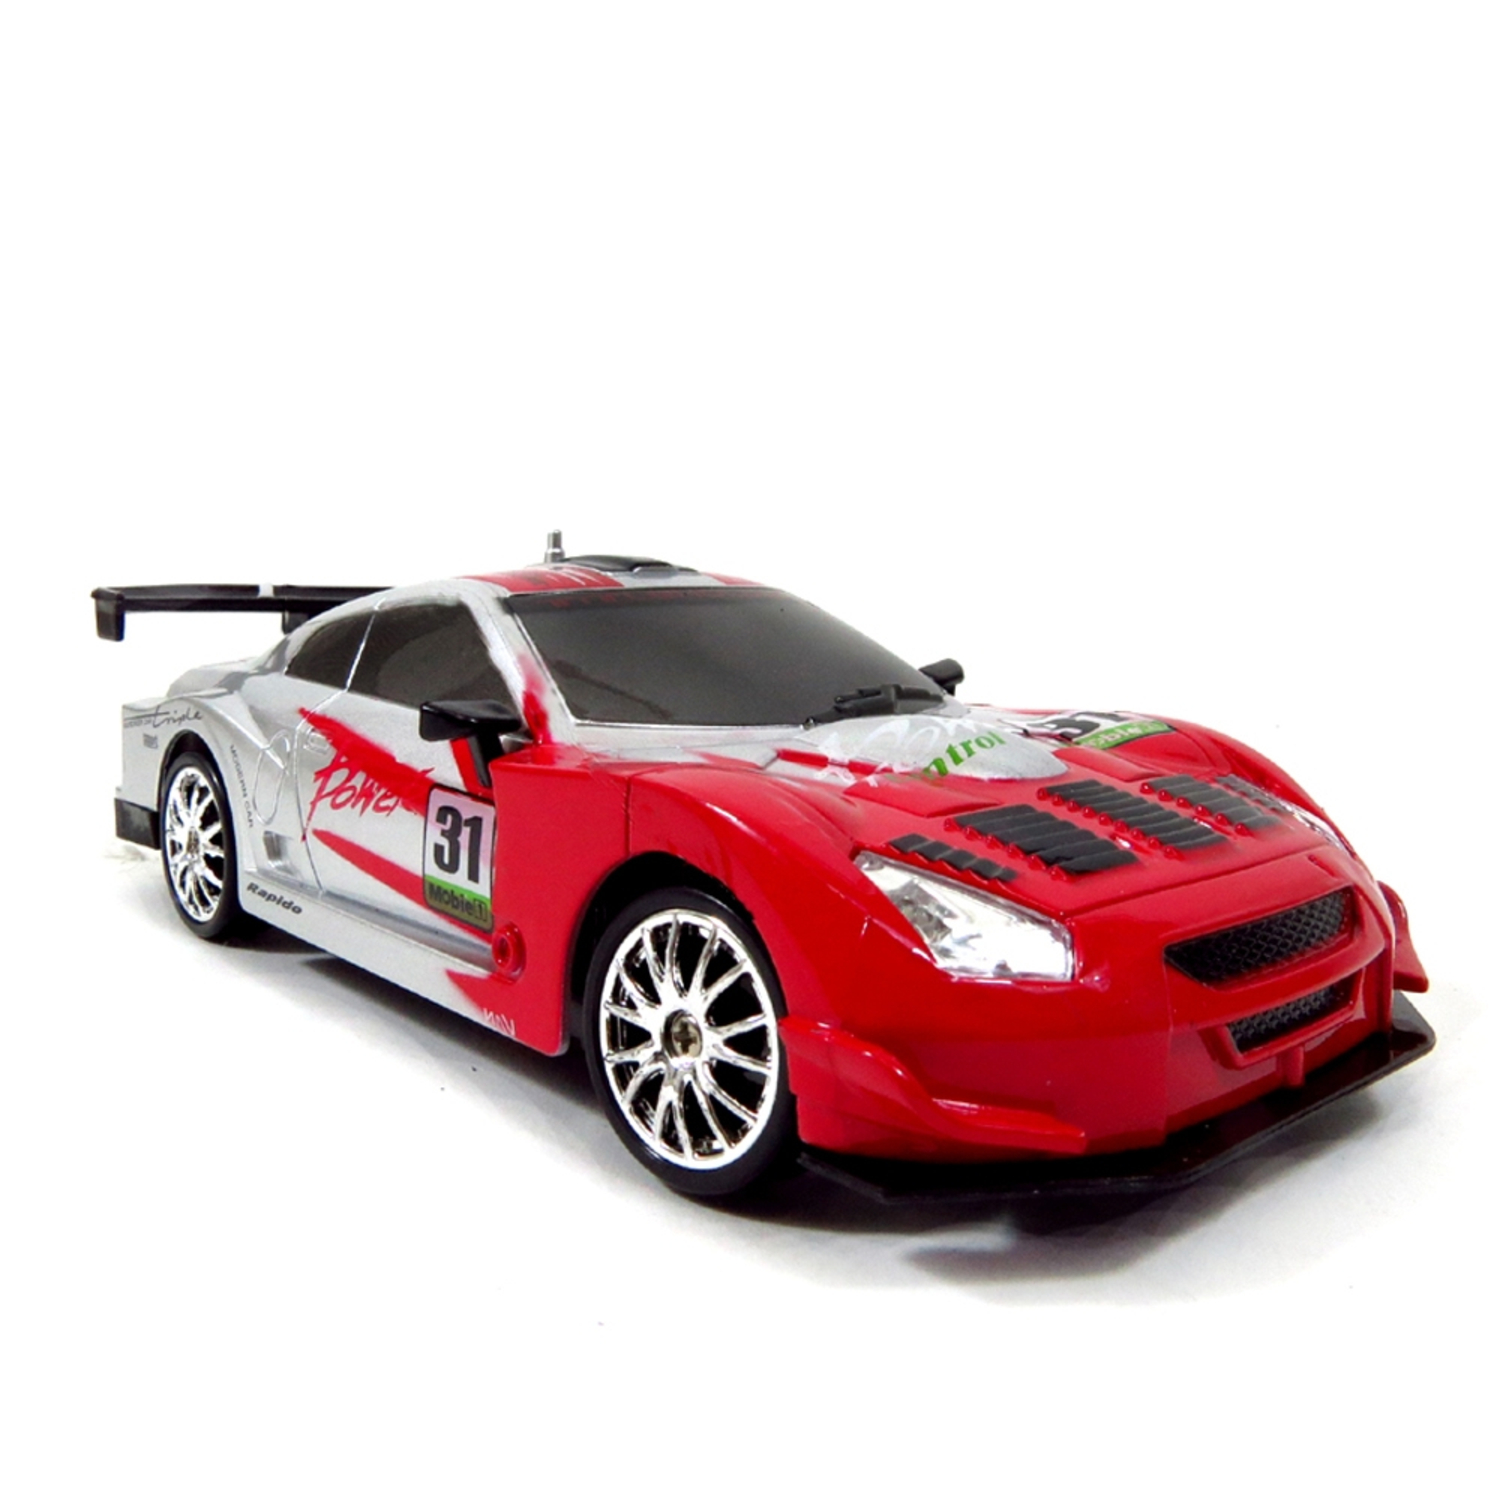 1:24 Super Fast RC Drift Race Car Radio Control - Red